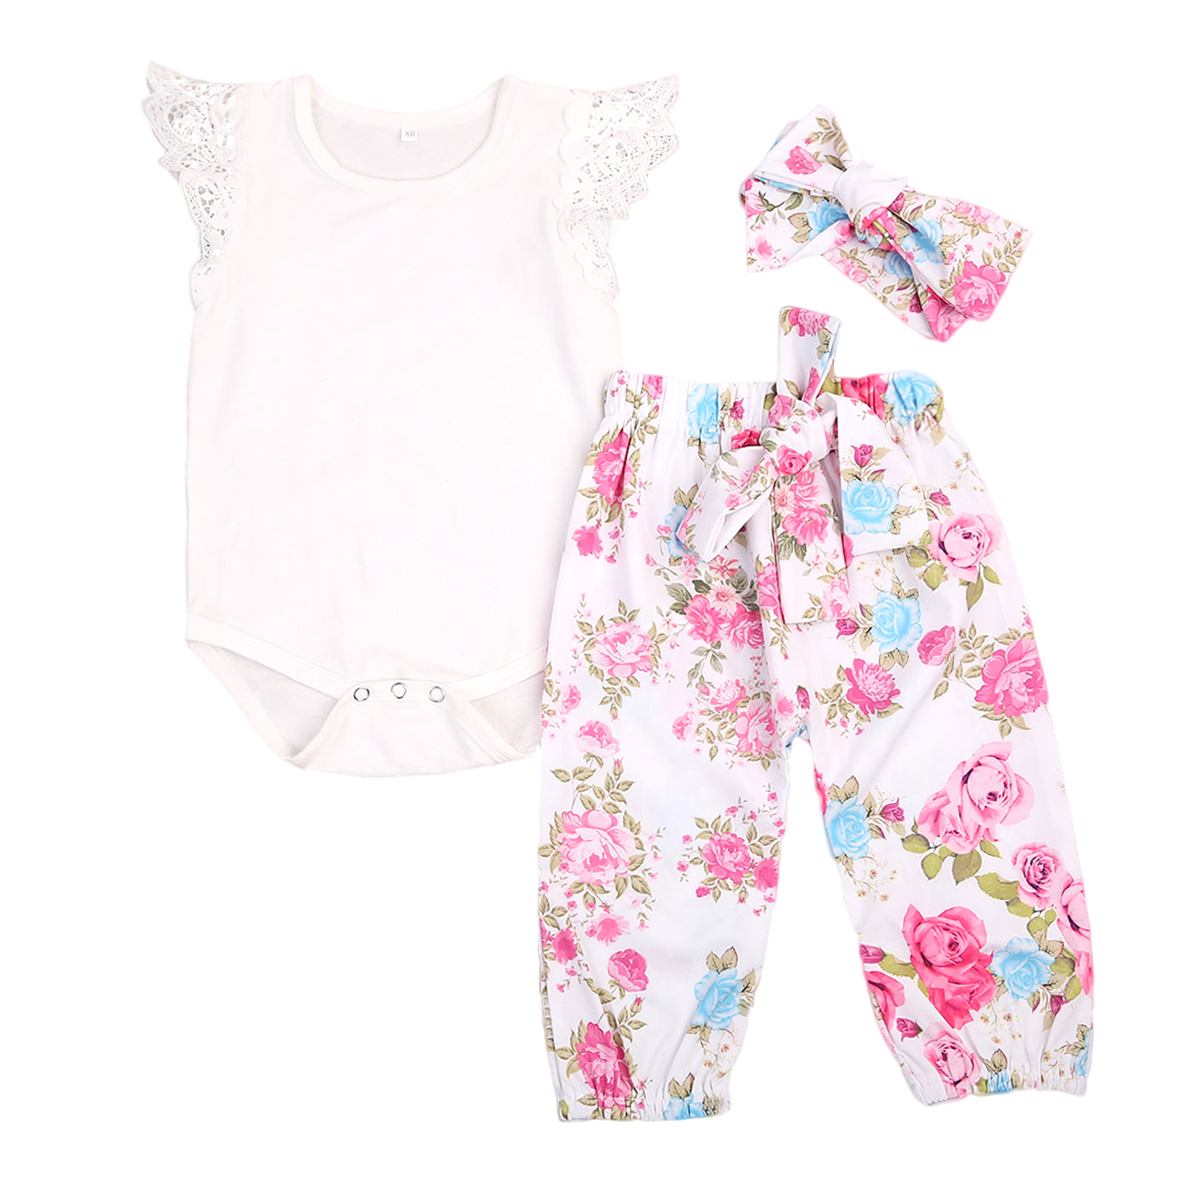 3PCS Set Newborn Baby Girl Clothing Set Lace Tops Bodysuits Short Sleeve Floral Pants Headband Outfit Clothes Baby Girls pink newborn infant baby girls clothes short sleeve bodysuit striped leg warmers headband 3pcs outfit bebek clothing set 0 18m